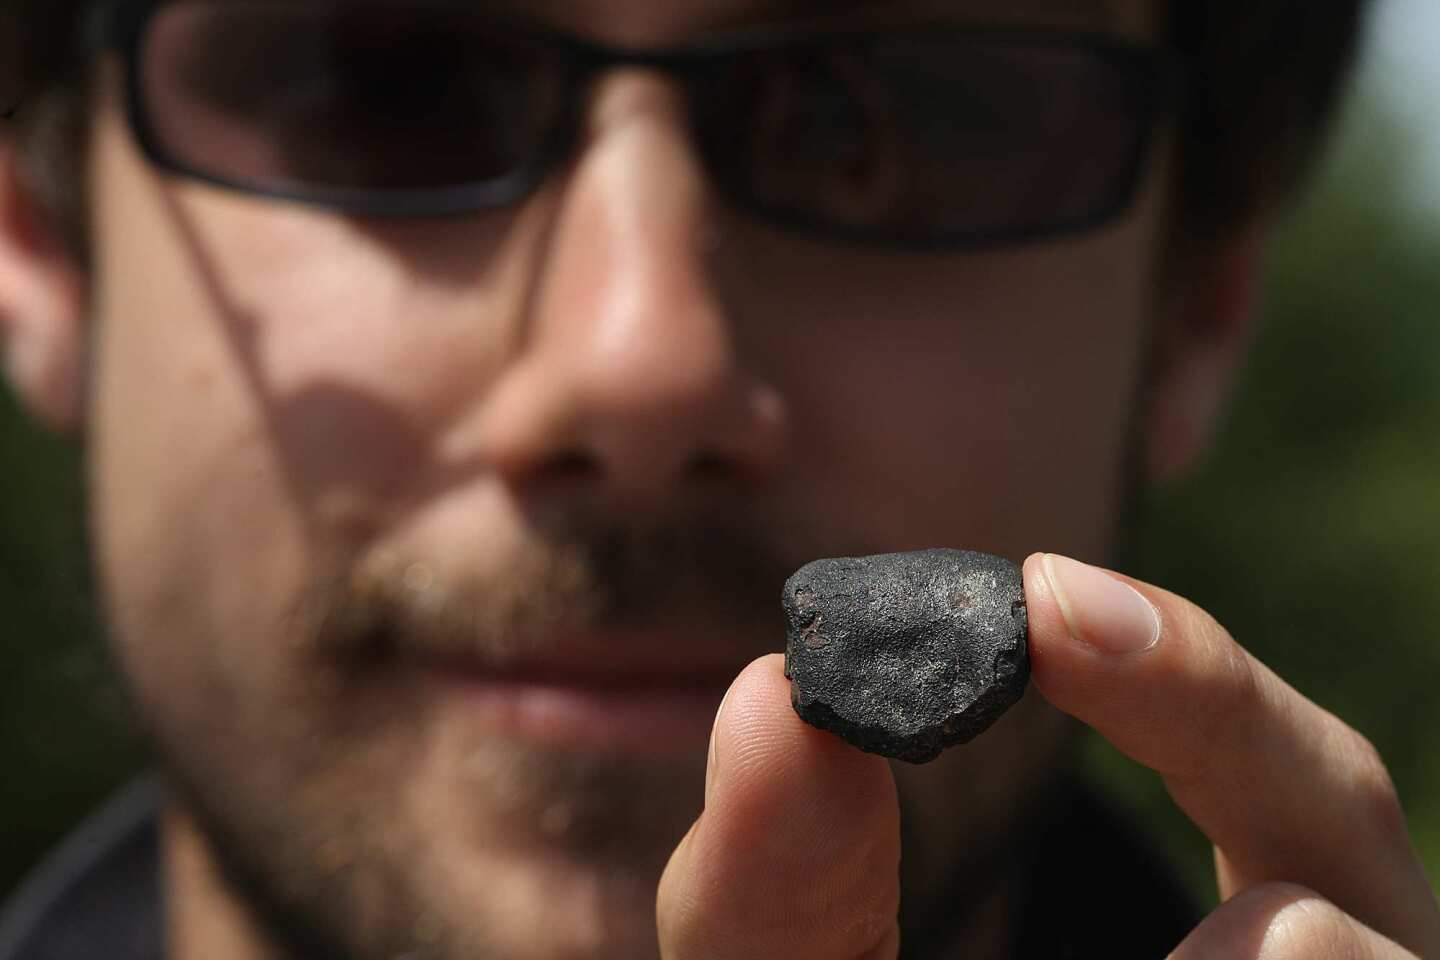 Jason Utas, a geology student at UC Berkeley, holds a 7.5-gram fragment of a meteorite called CM chondrite he found Friday in Coloma, Calif. He was among the many people who descended into the area following a fireball on April 22. Utas found the fragment in the David Moore Nature Area off Highway 49, just west of Coloma. Scientists used weather radar to track the movements of the object and predicted it fell near Coloma. The meteorite is a rare class that contains water and carbon compounds that are similar to those responsible for producing life on Earth. It is in this location that gold was first discovered in 1848.